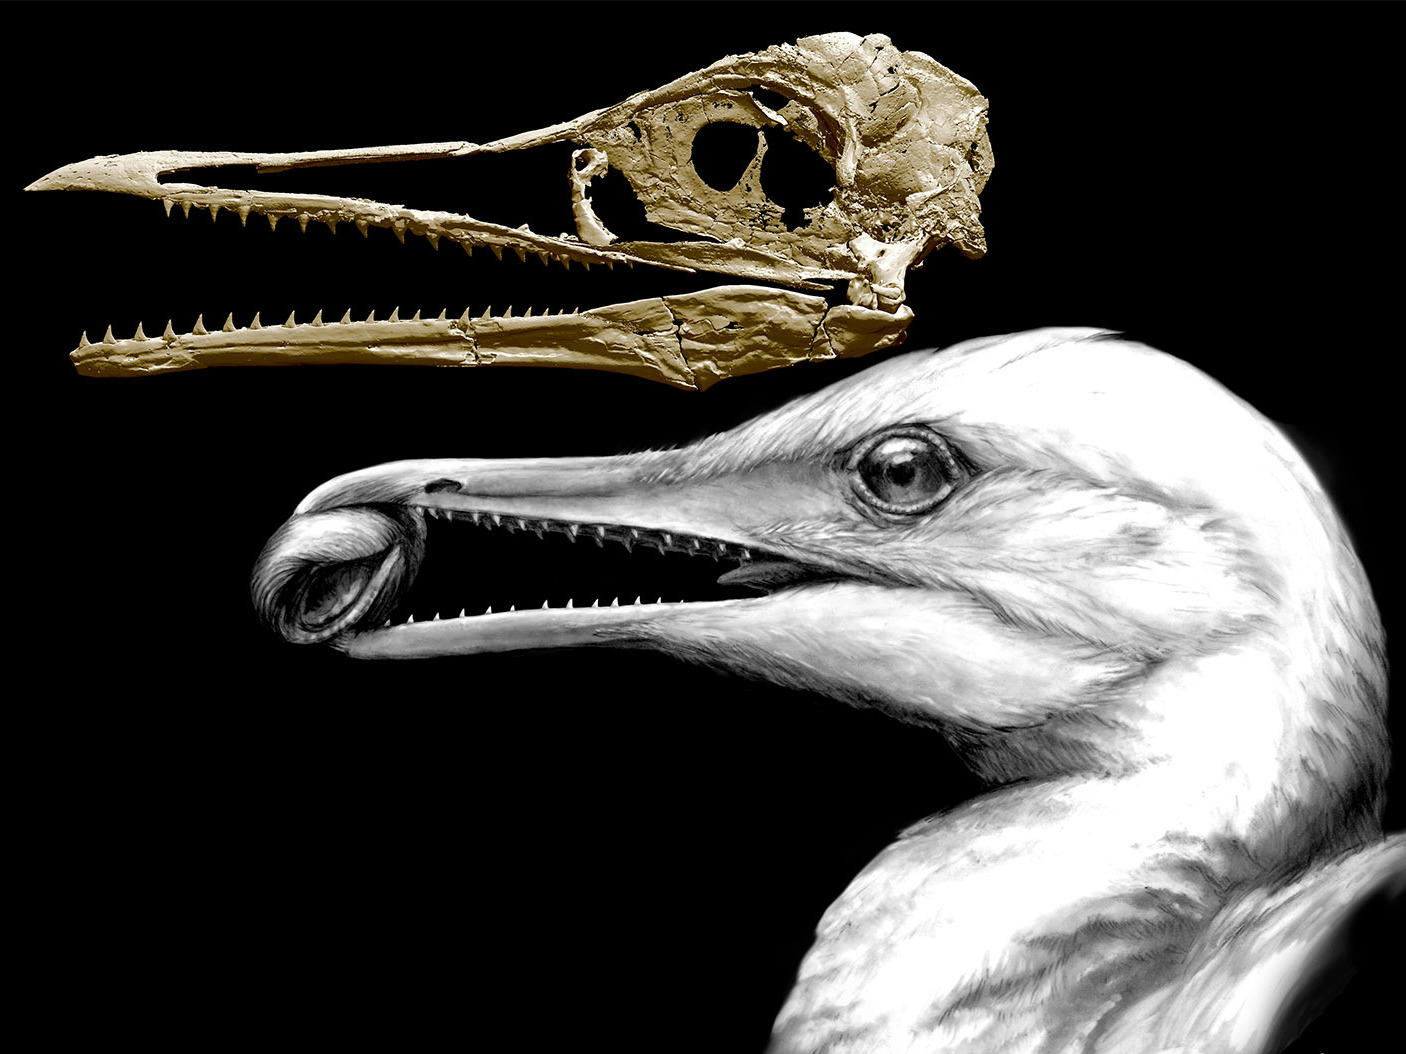 Researchers Discover How Birds Got Their Beaks